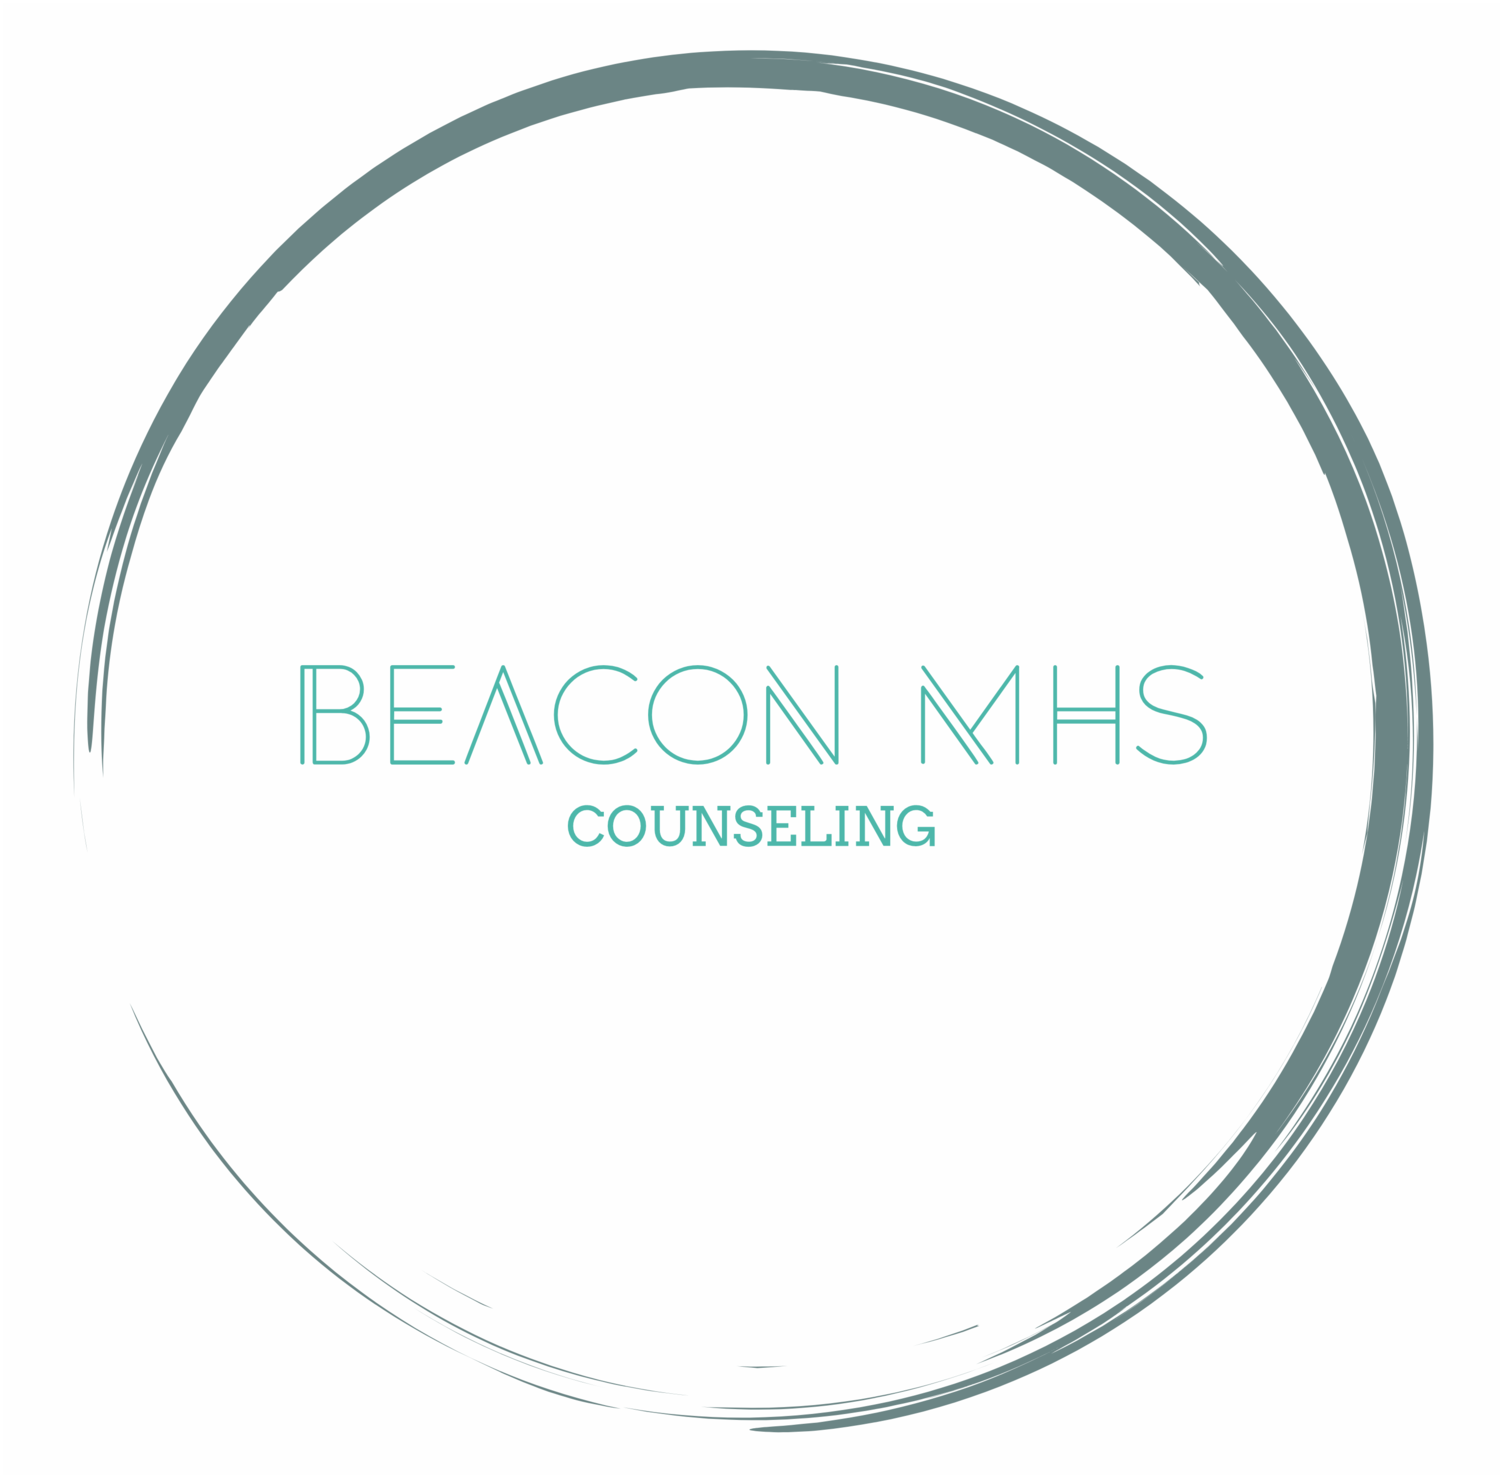 Beacon MHS Counseling